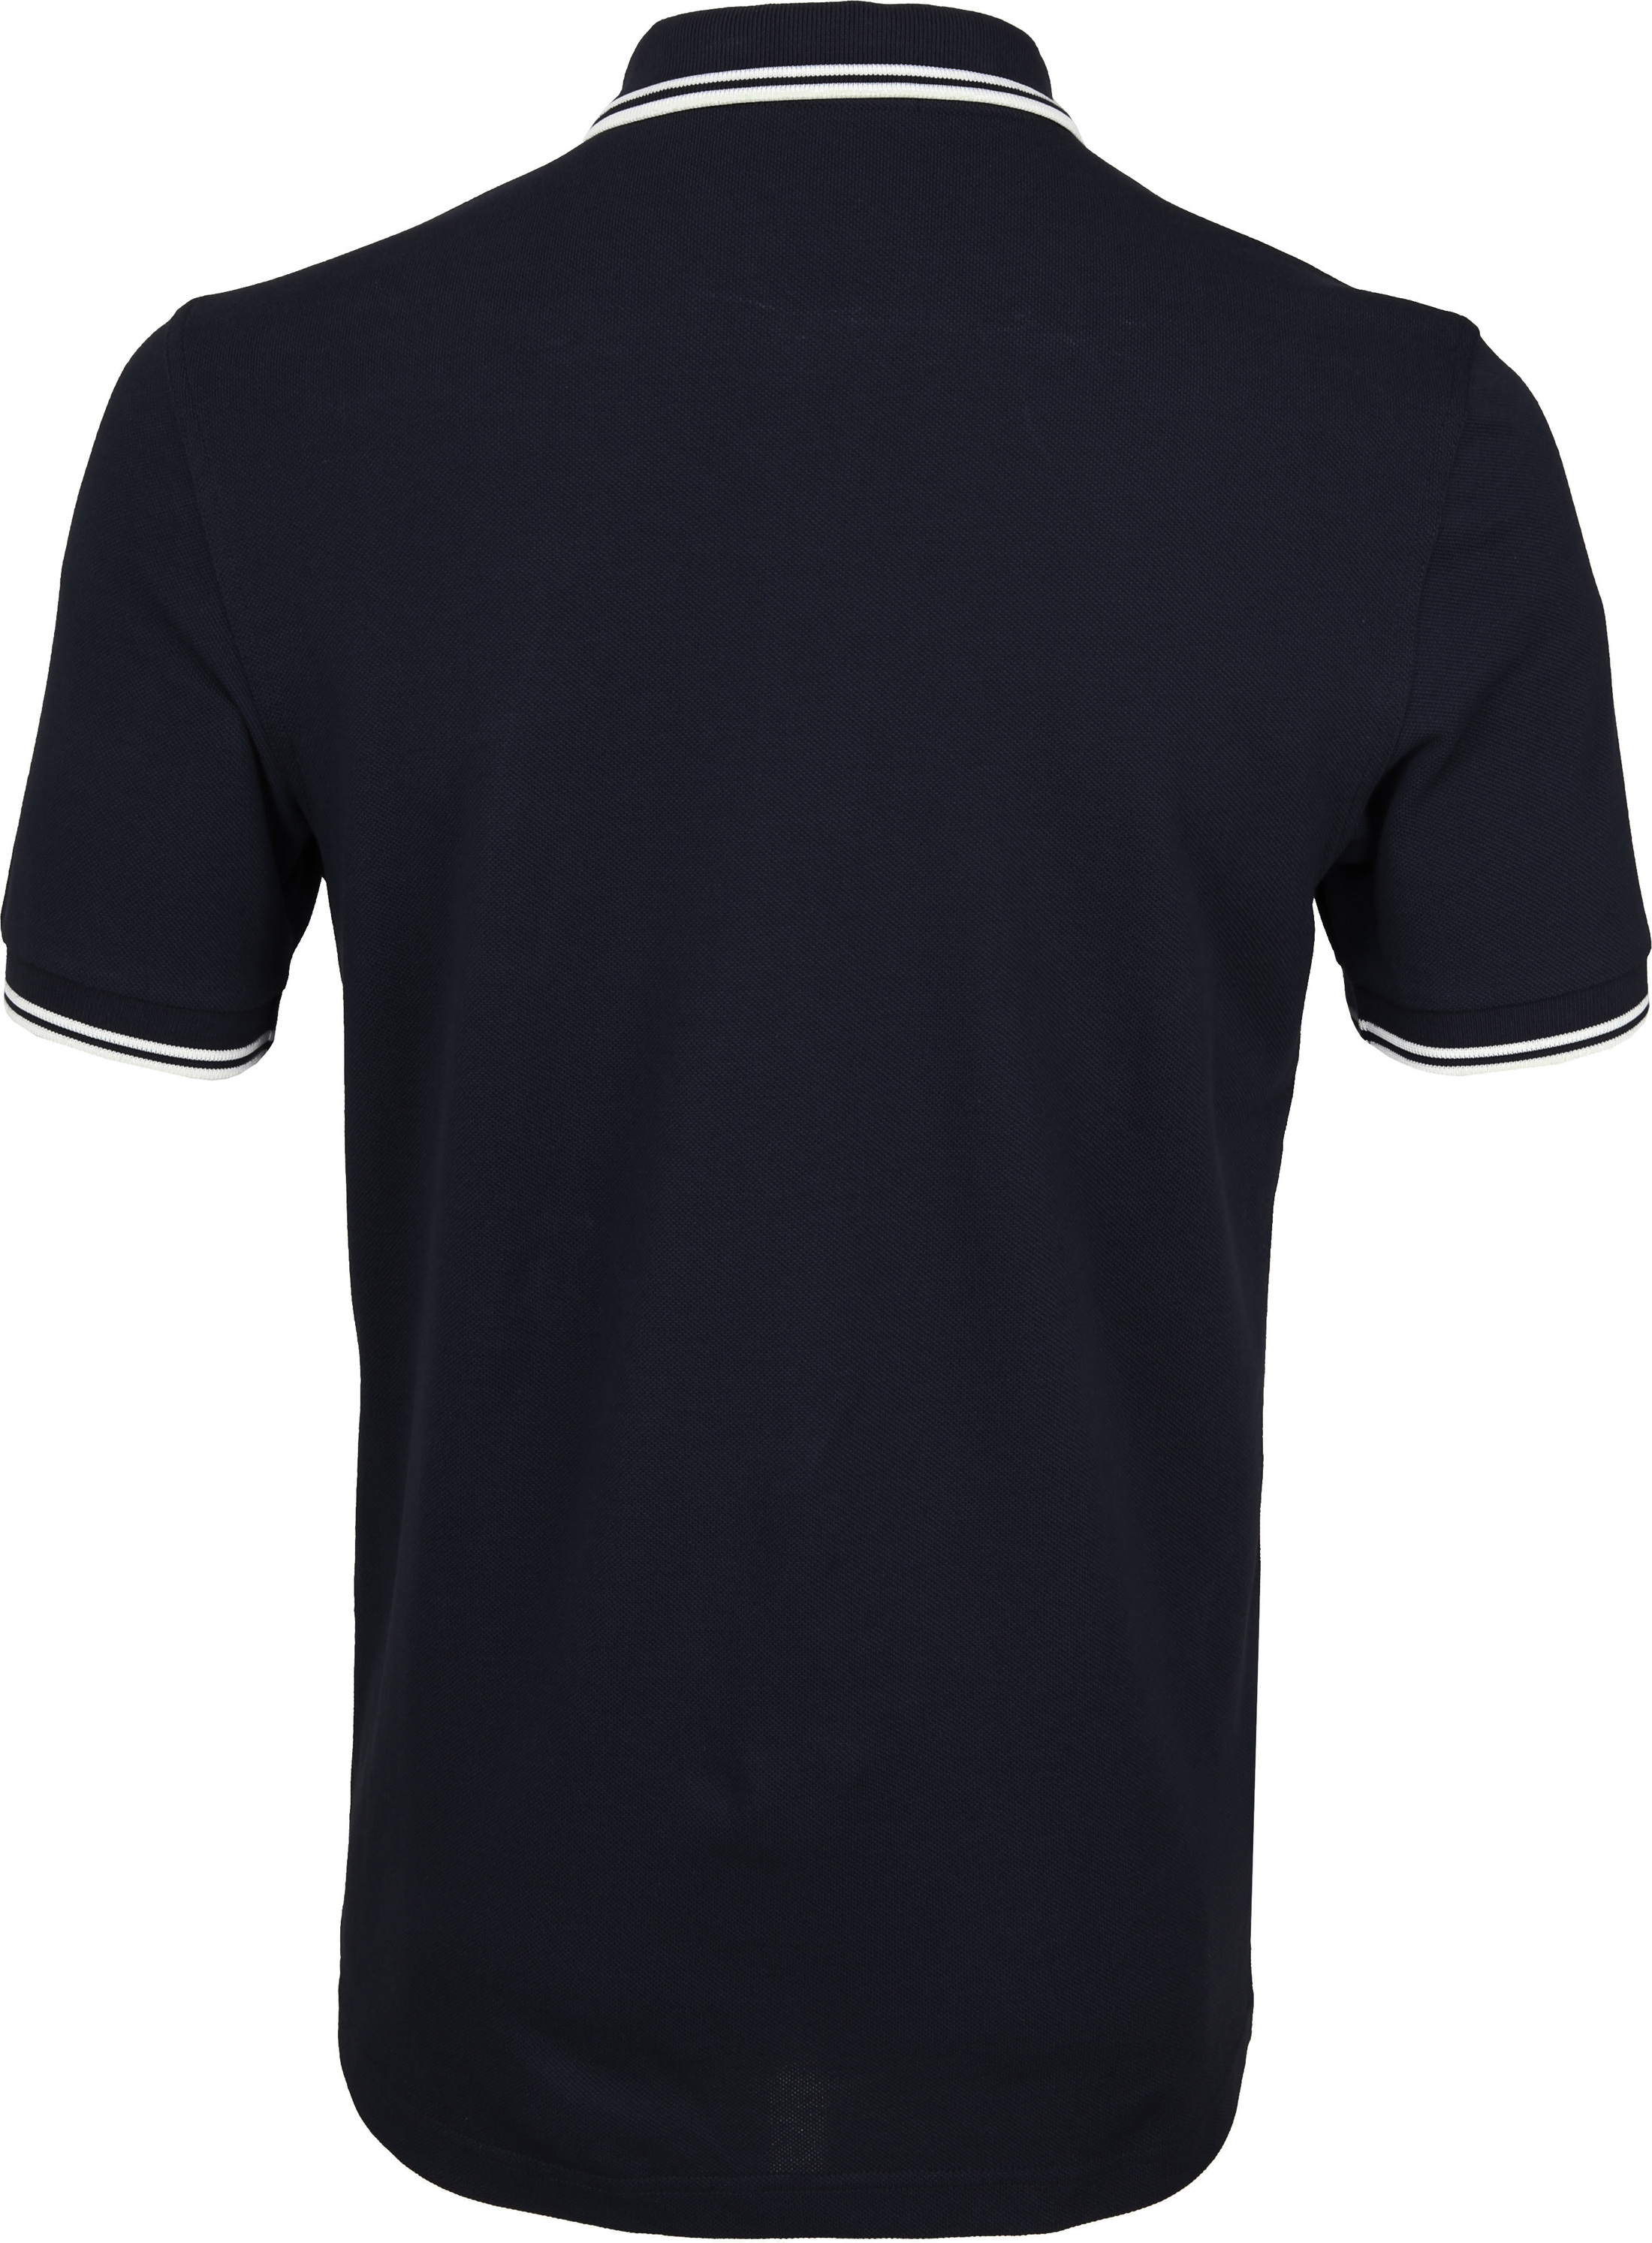 Fred Perry Polo Shirt Navy White photo 2